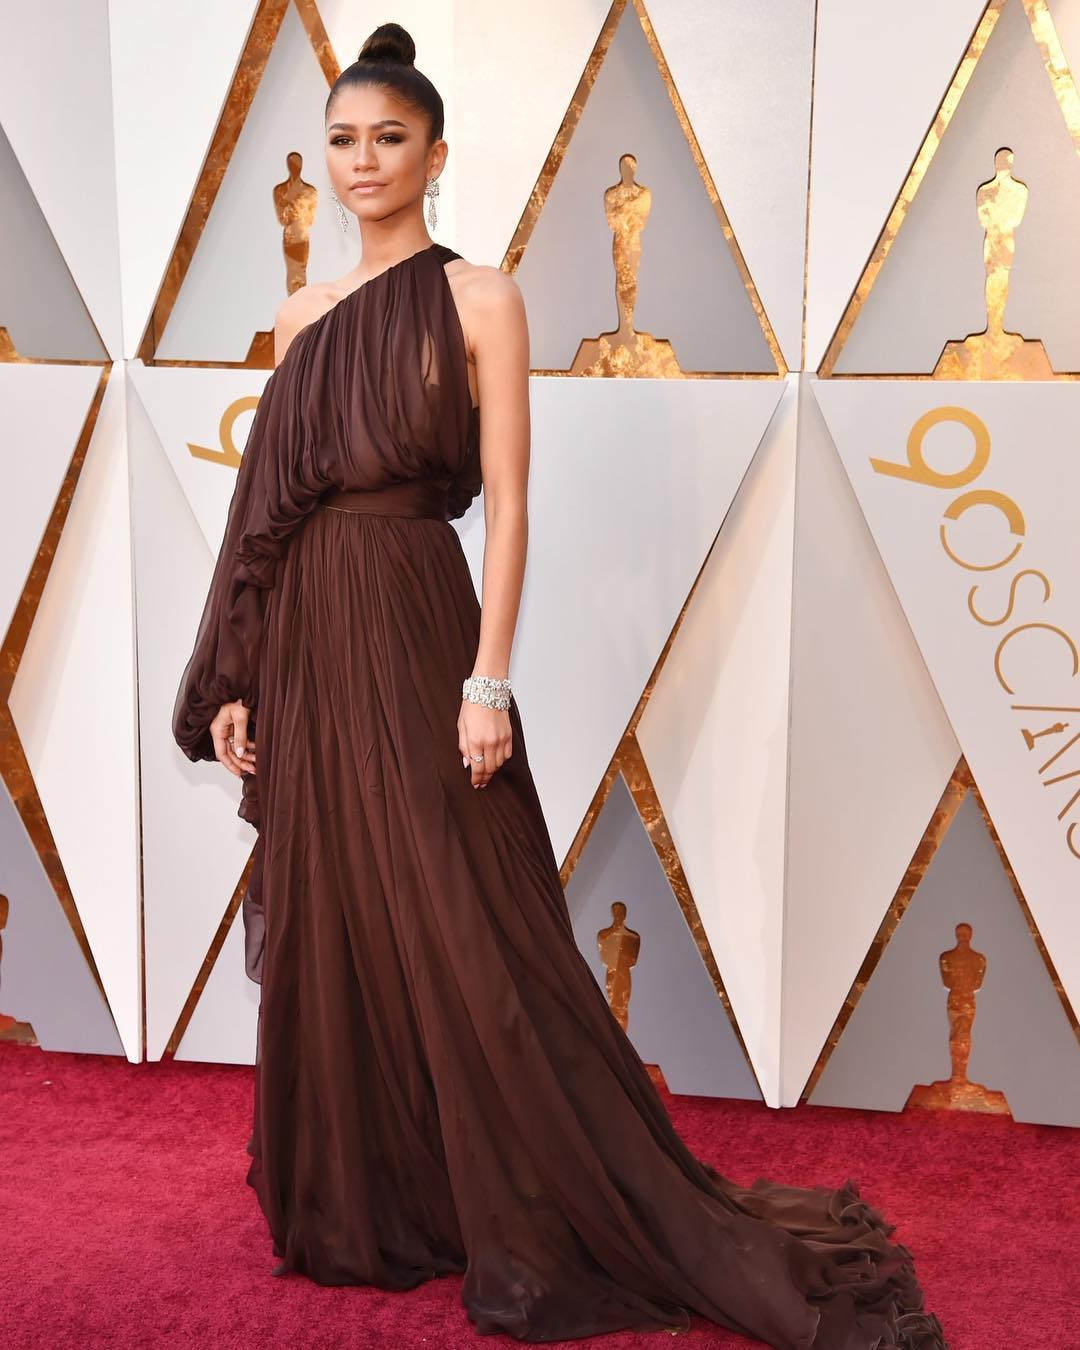 Our Favourite Red Carpet Looks from The 2018 Oscars